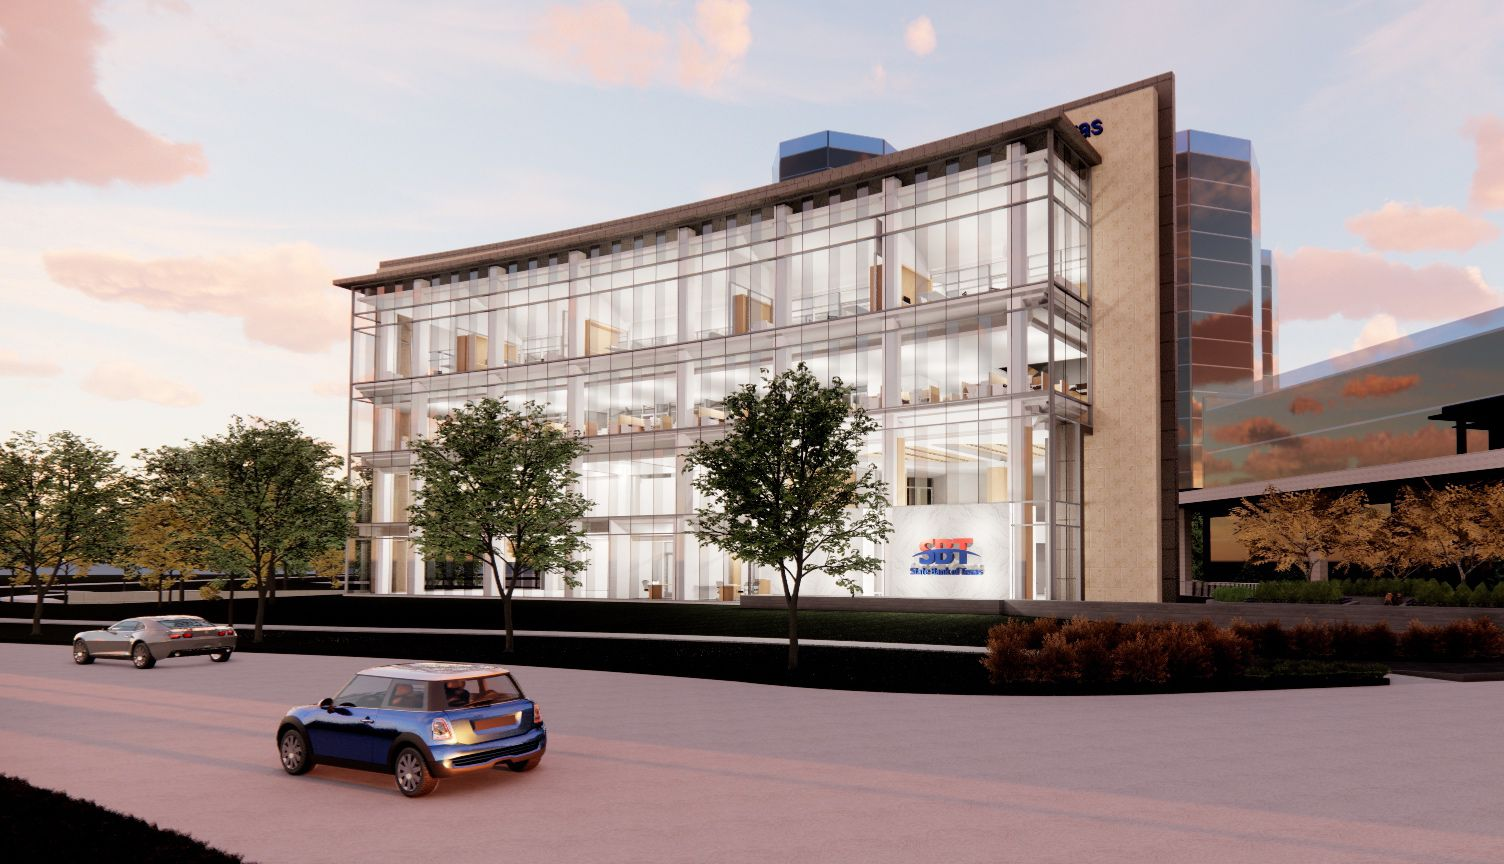 The new State Bank of Texas building will be near O'Connor Boulevard and State Highway 114.